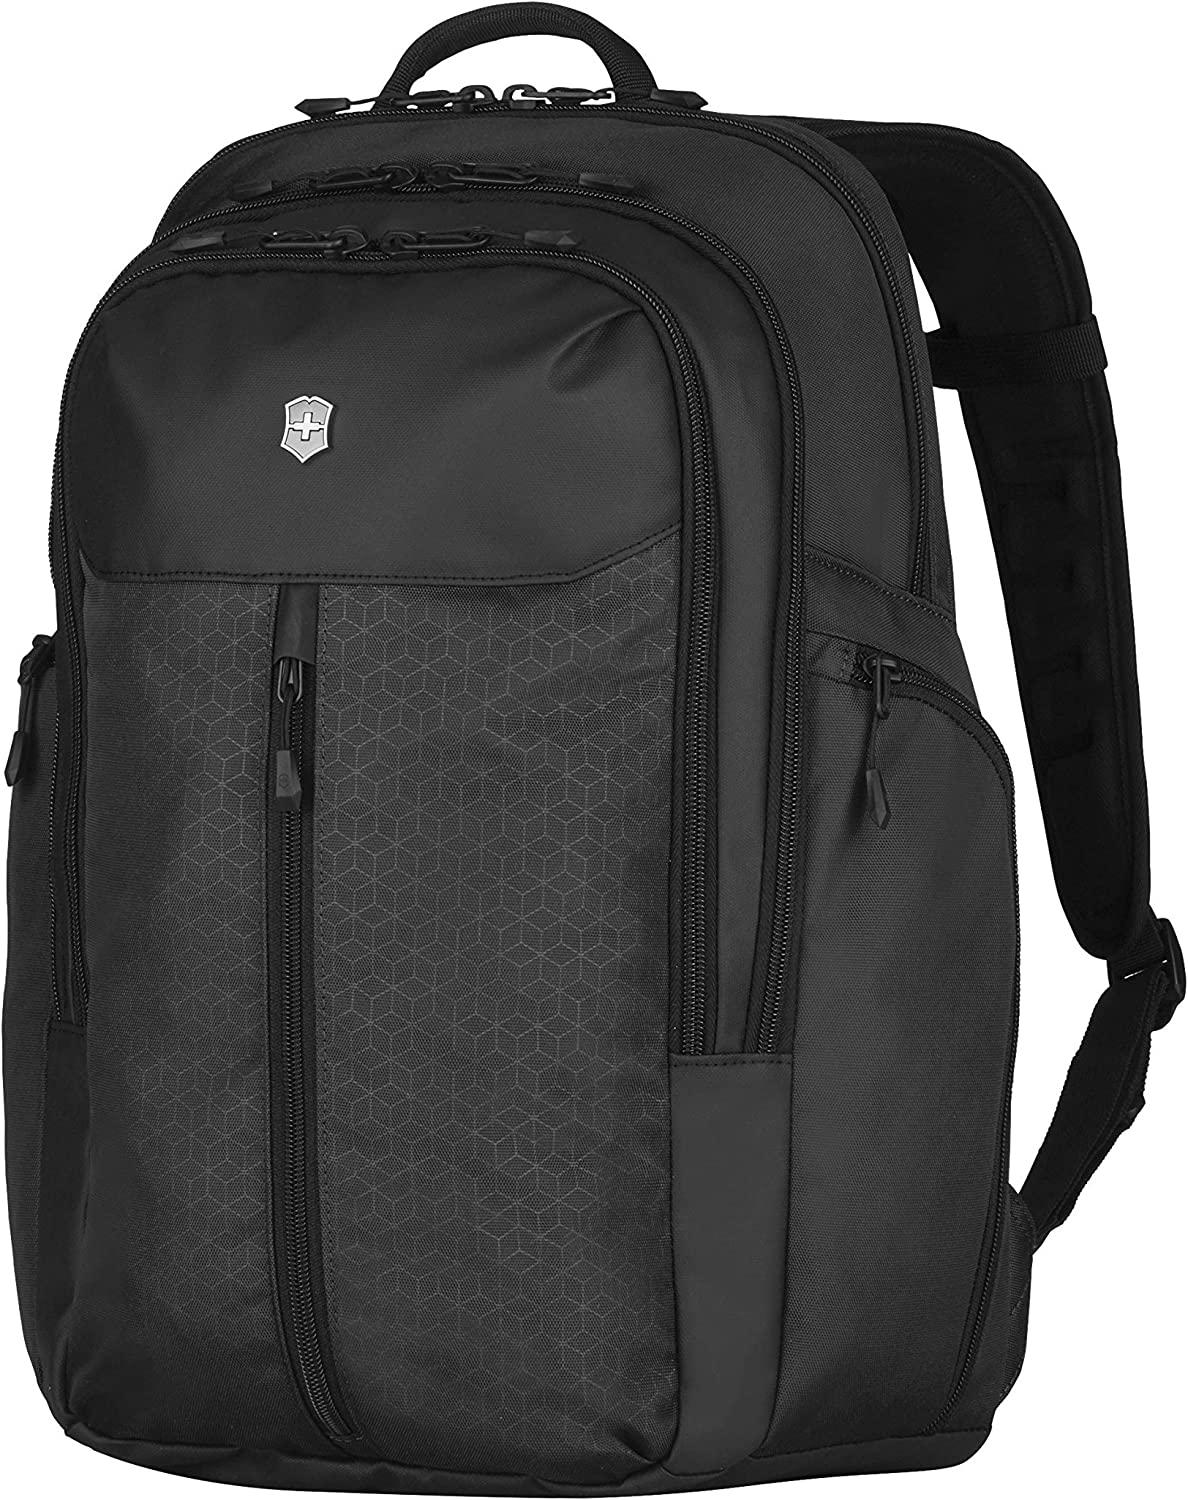 Victorinox Altmont Original Vertical-Zip Laptop Backpack (Black)